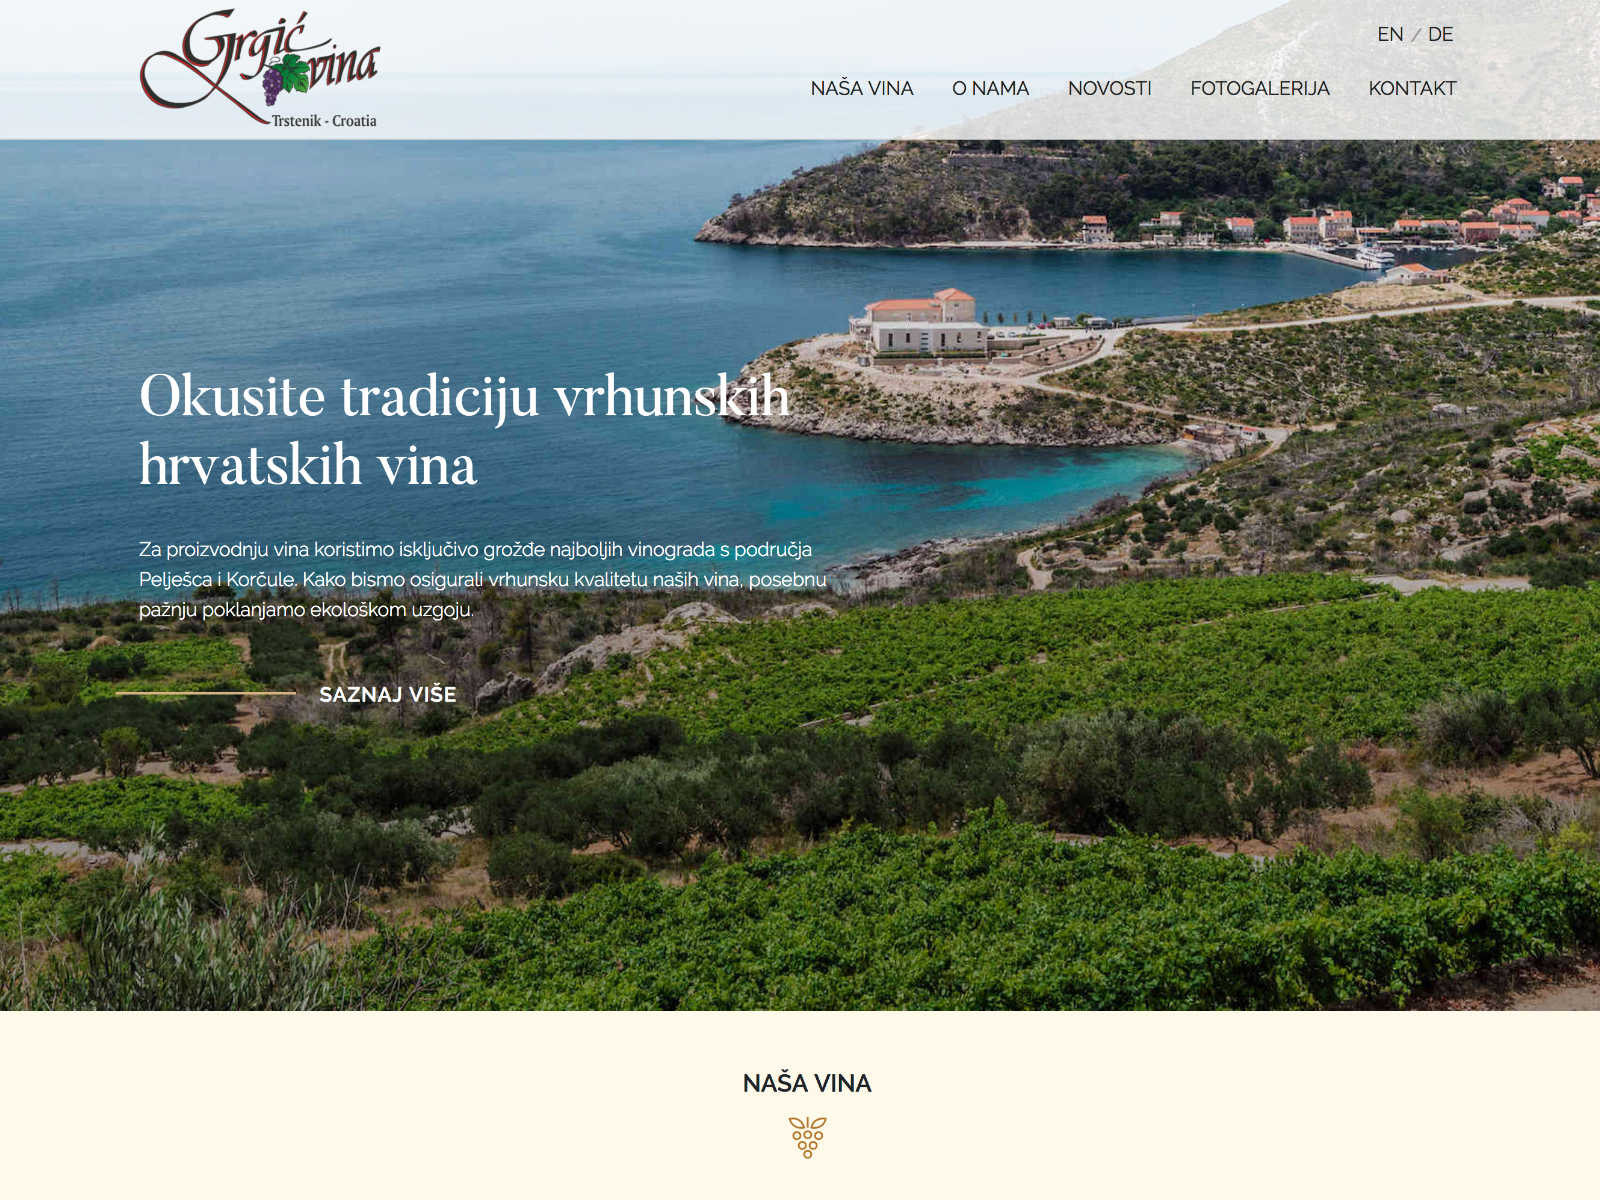 Grgić vina Website